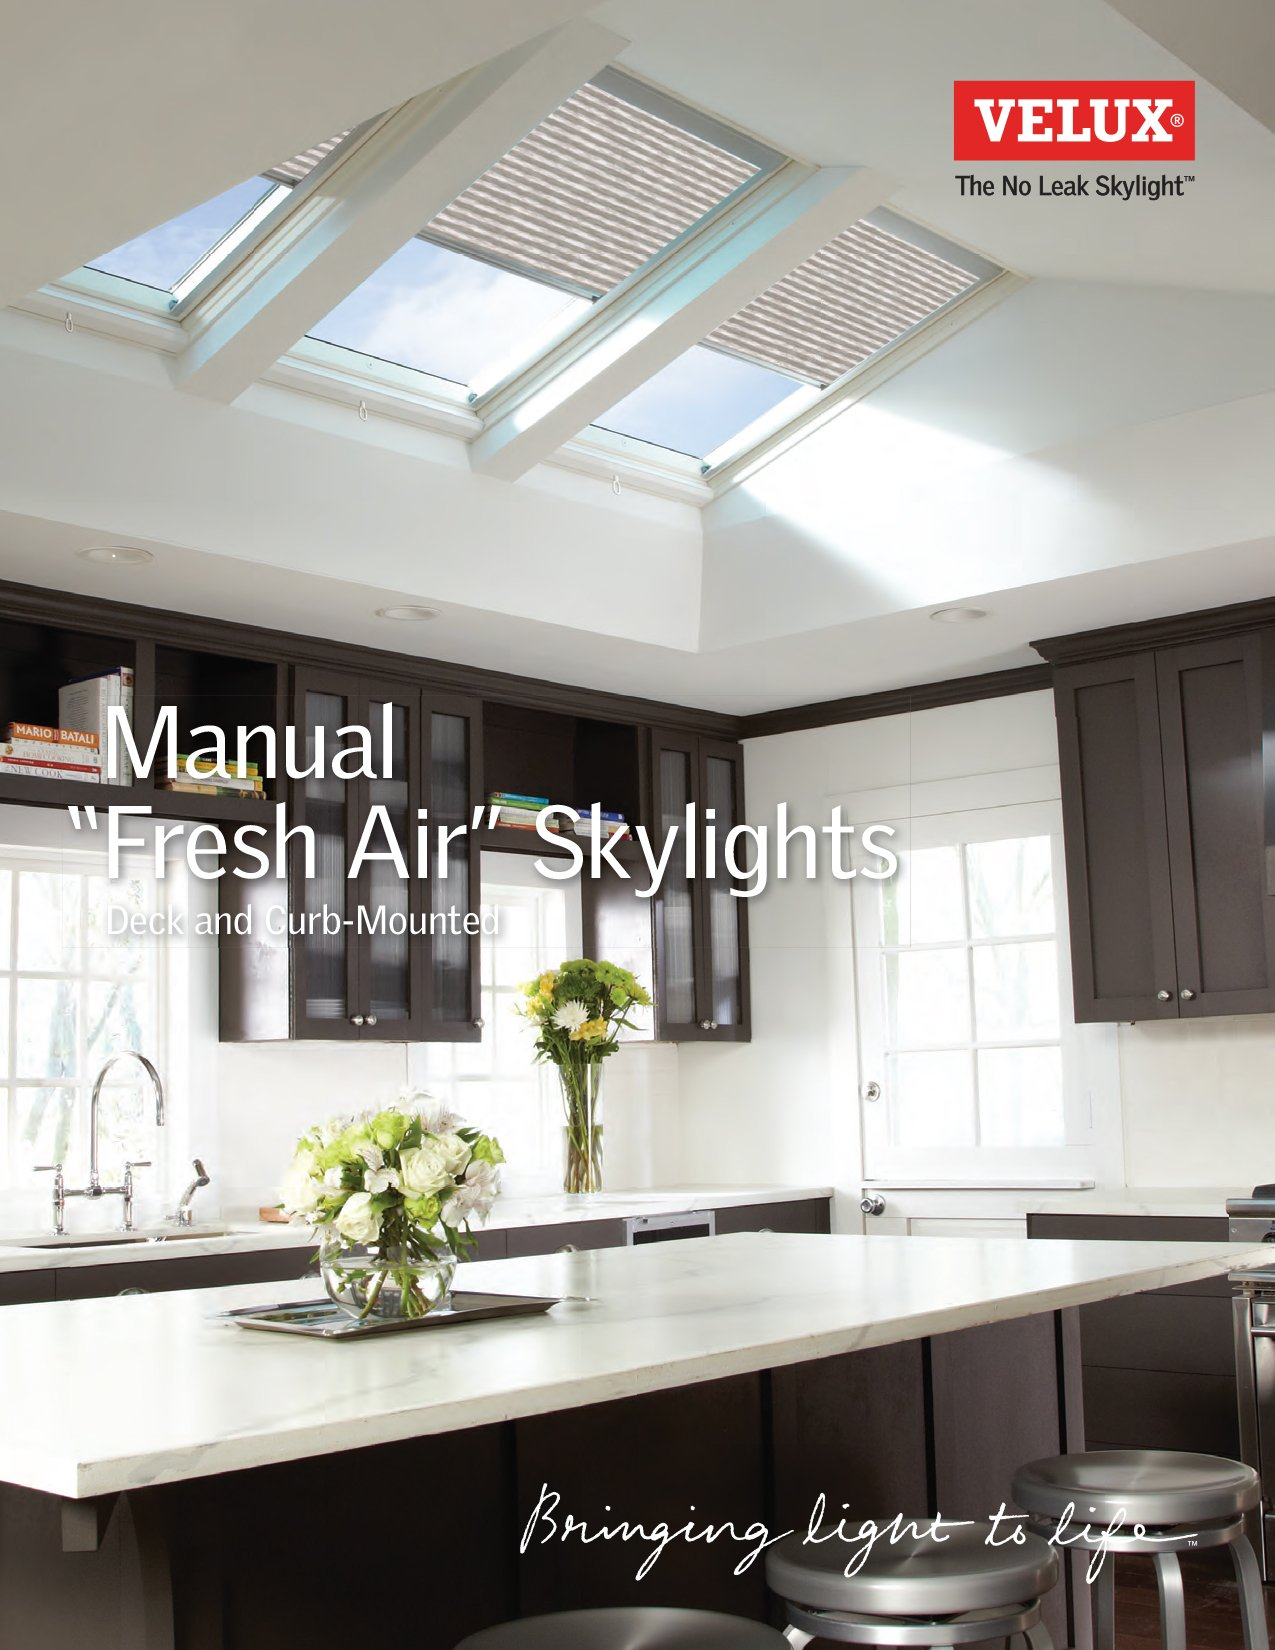 manualskylight-productguide